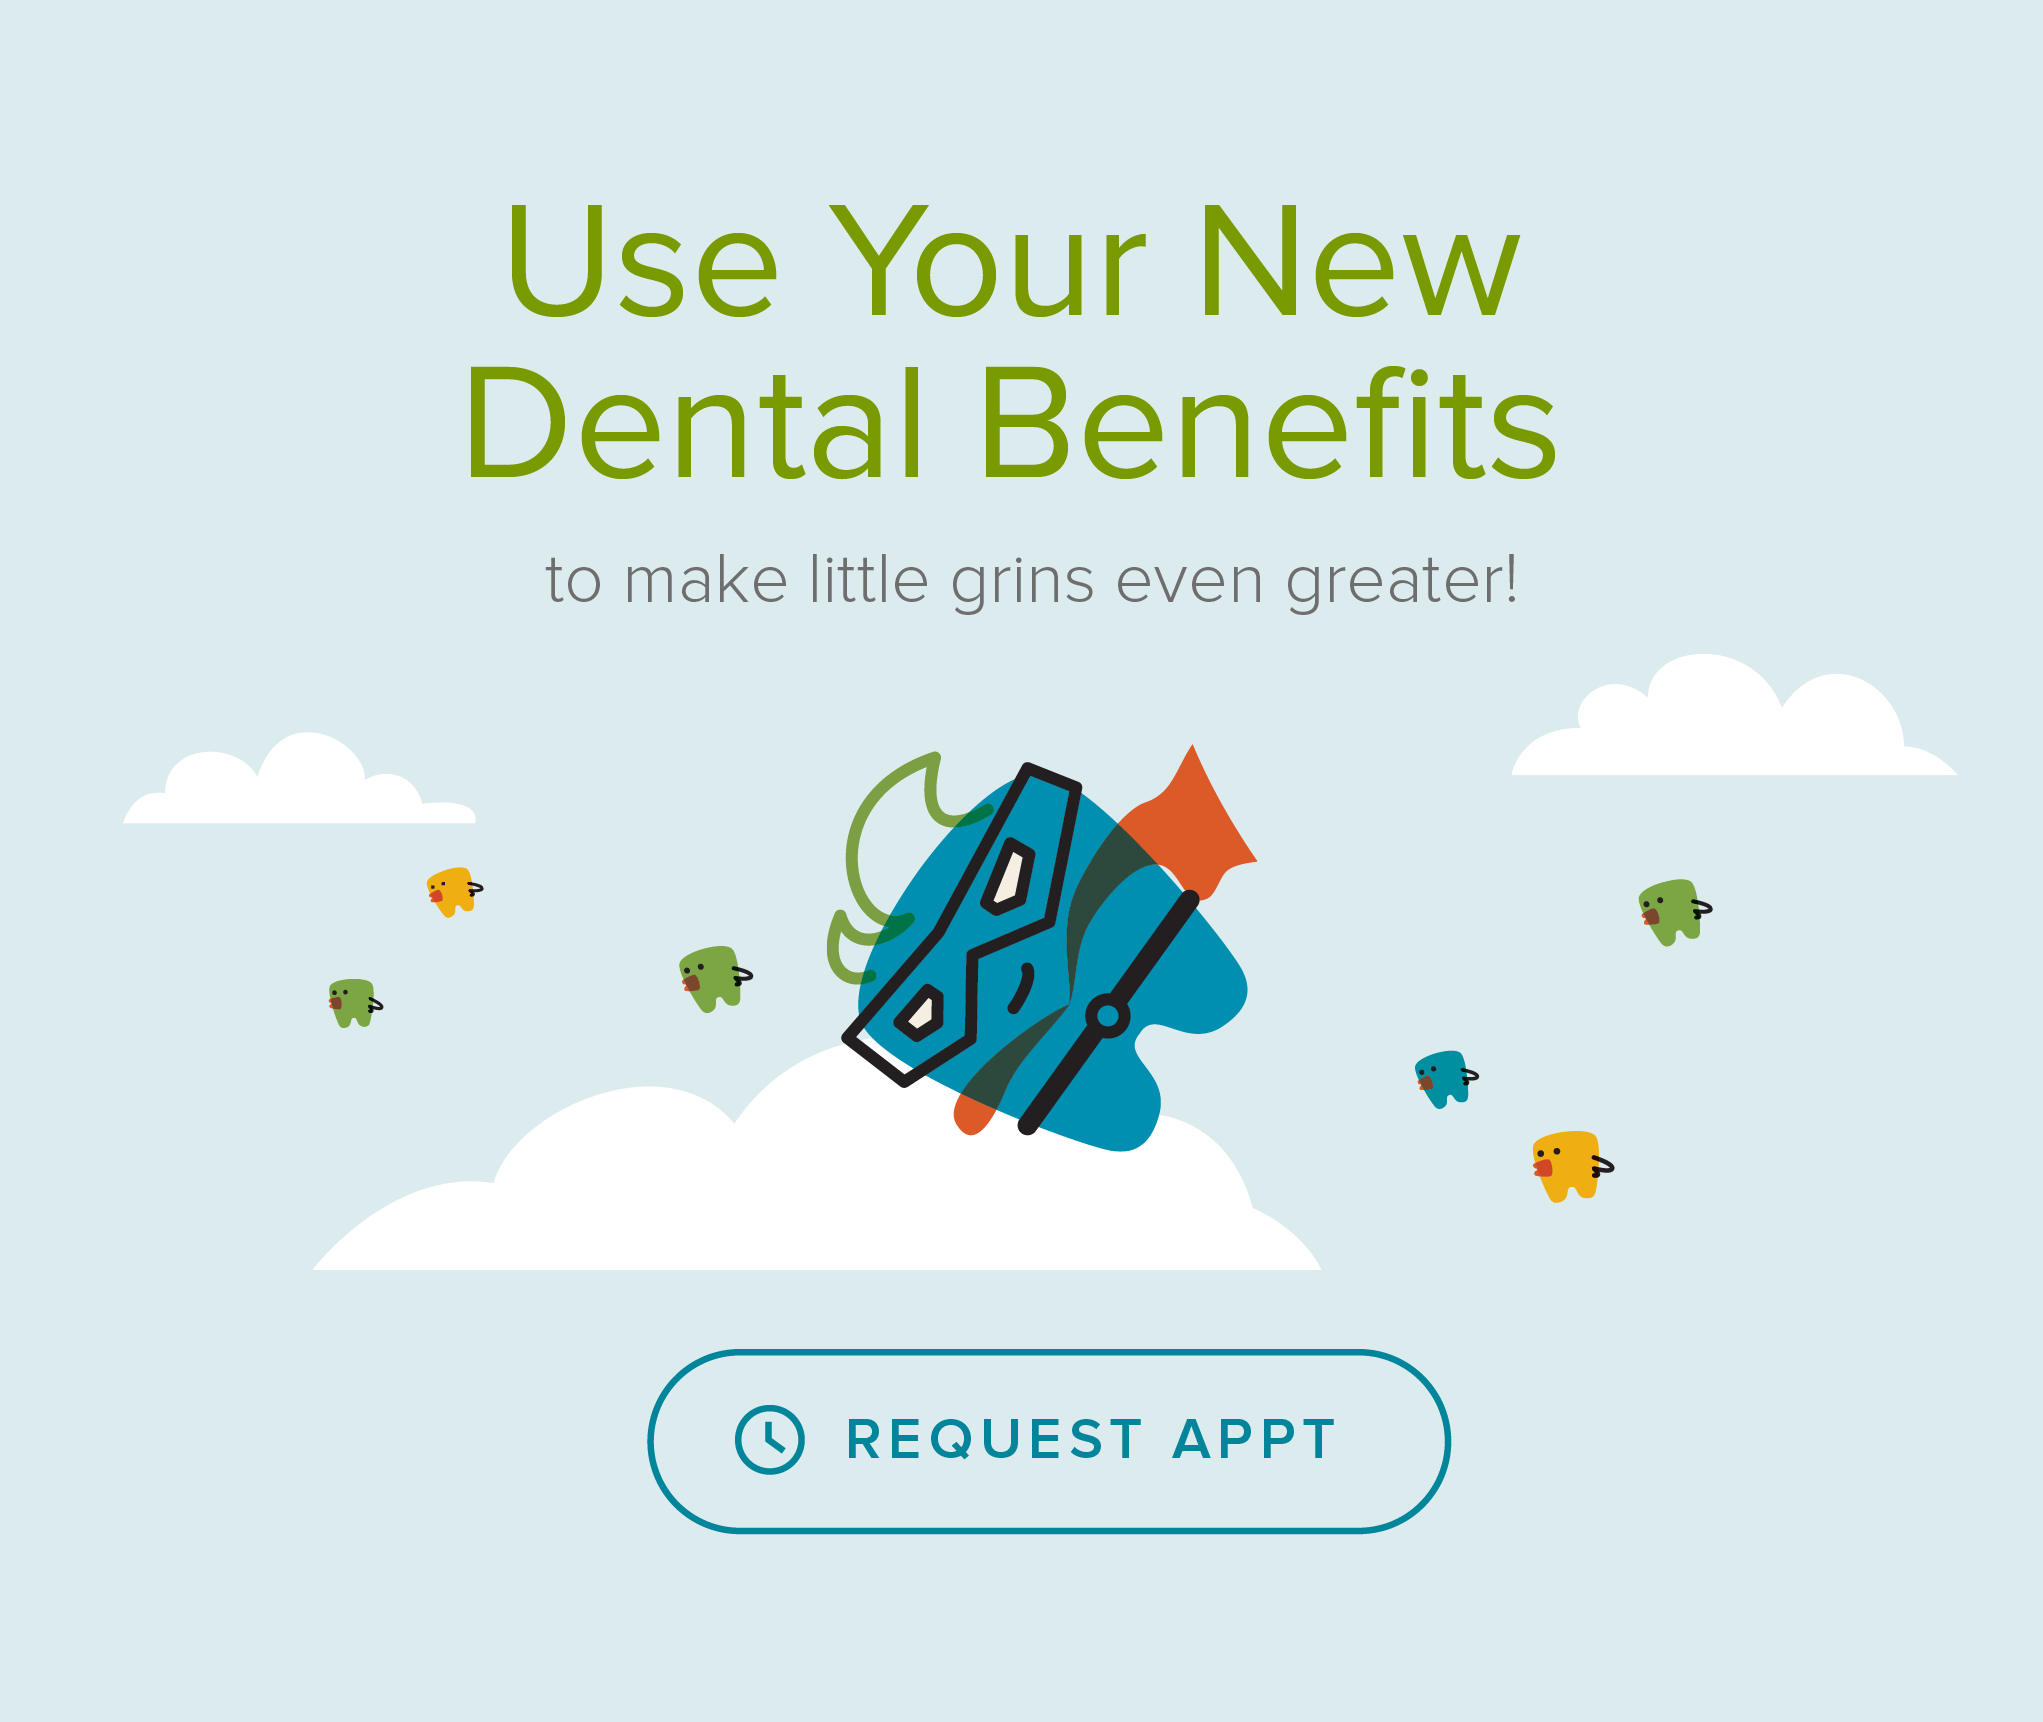 My Kid's Dentist & Orthodontics - Make the Most of Your Benefits